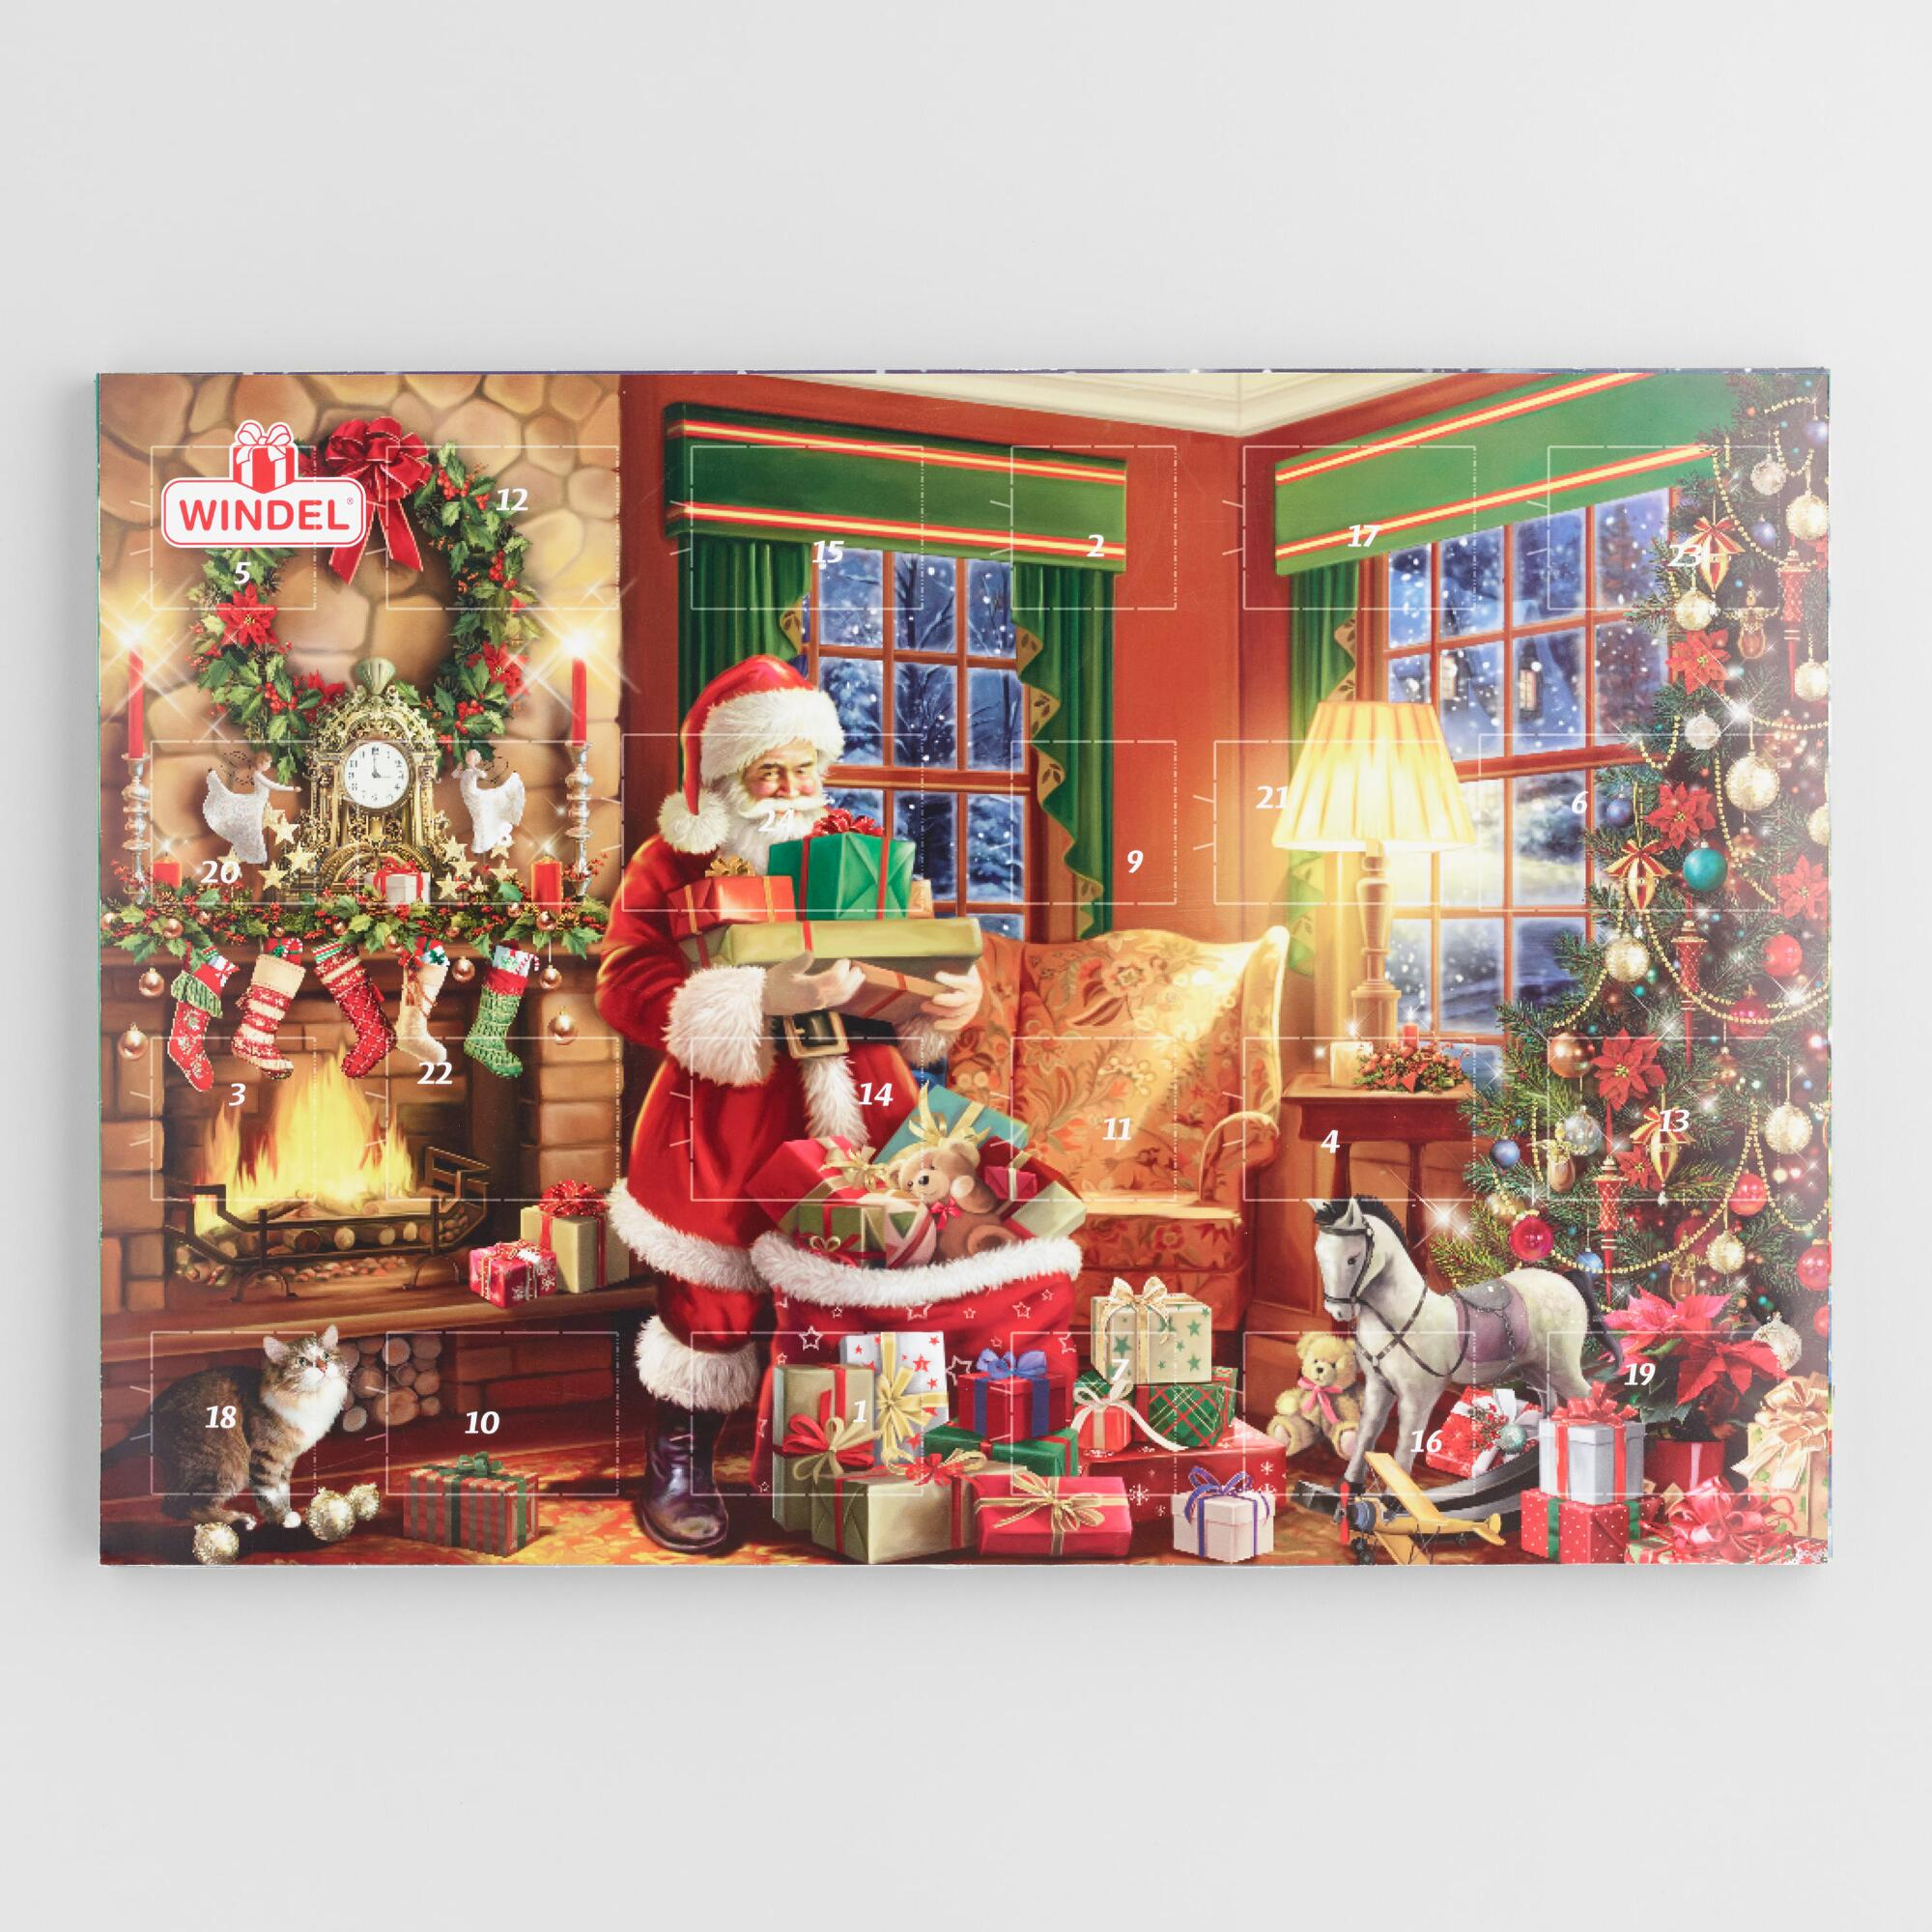 World Bazar: Windel Train Advent Calendar